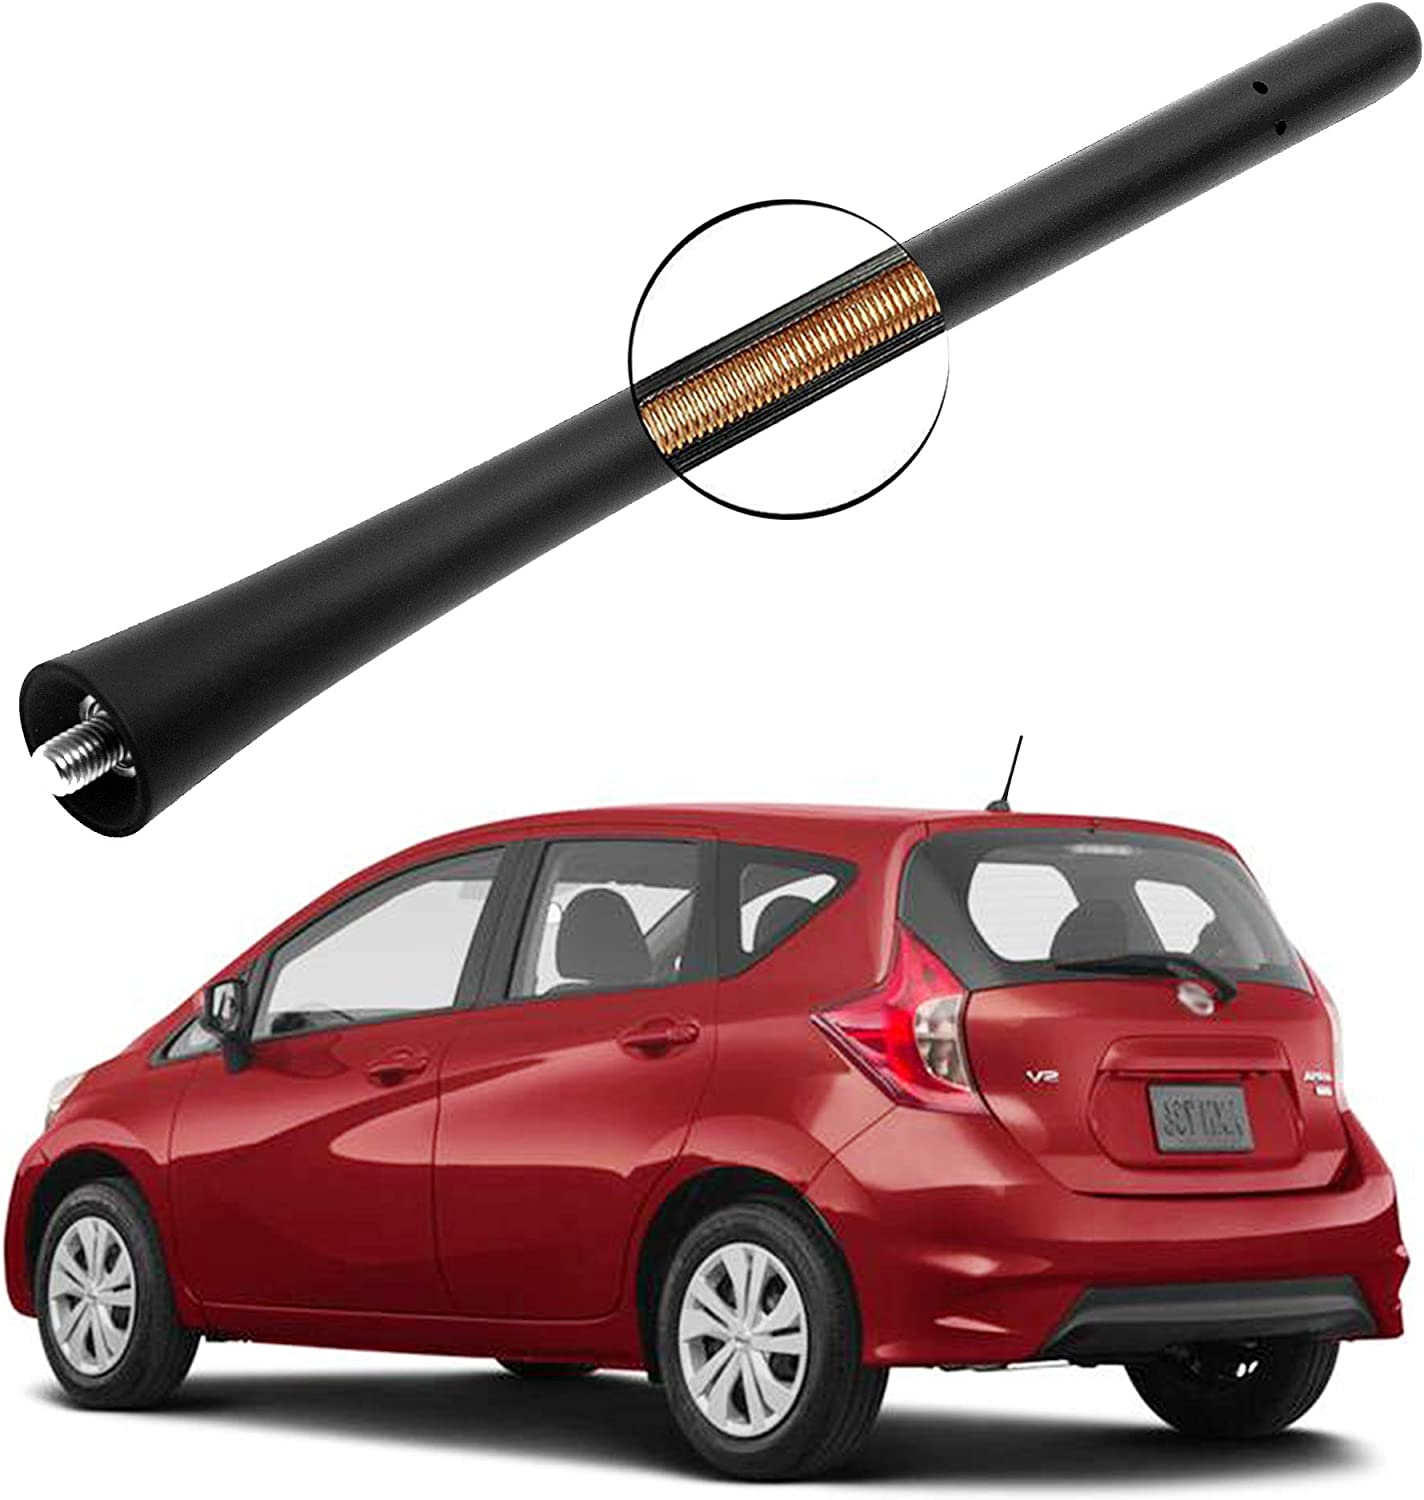 2000-2017 2002-2018 Nissan Frontier Nissan DayZ 2002-2019 1998-2020 2003-2020 Nissan Titan Nissan 350Z 370Z Blue Nissan Cube The Antenna for Nissan Rogue 2008-2020